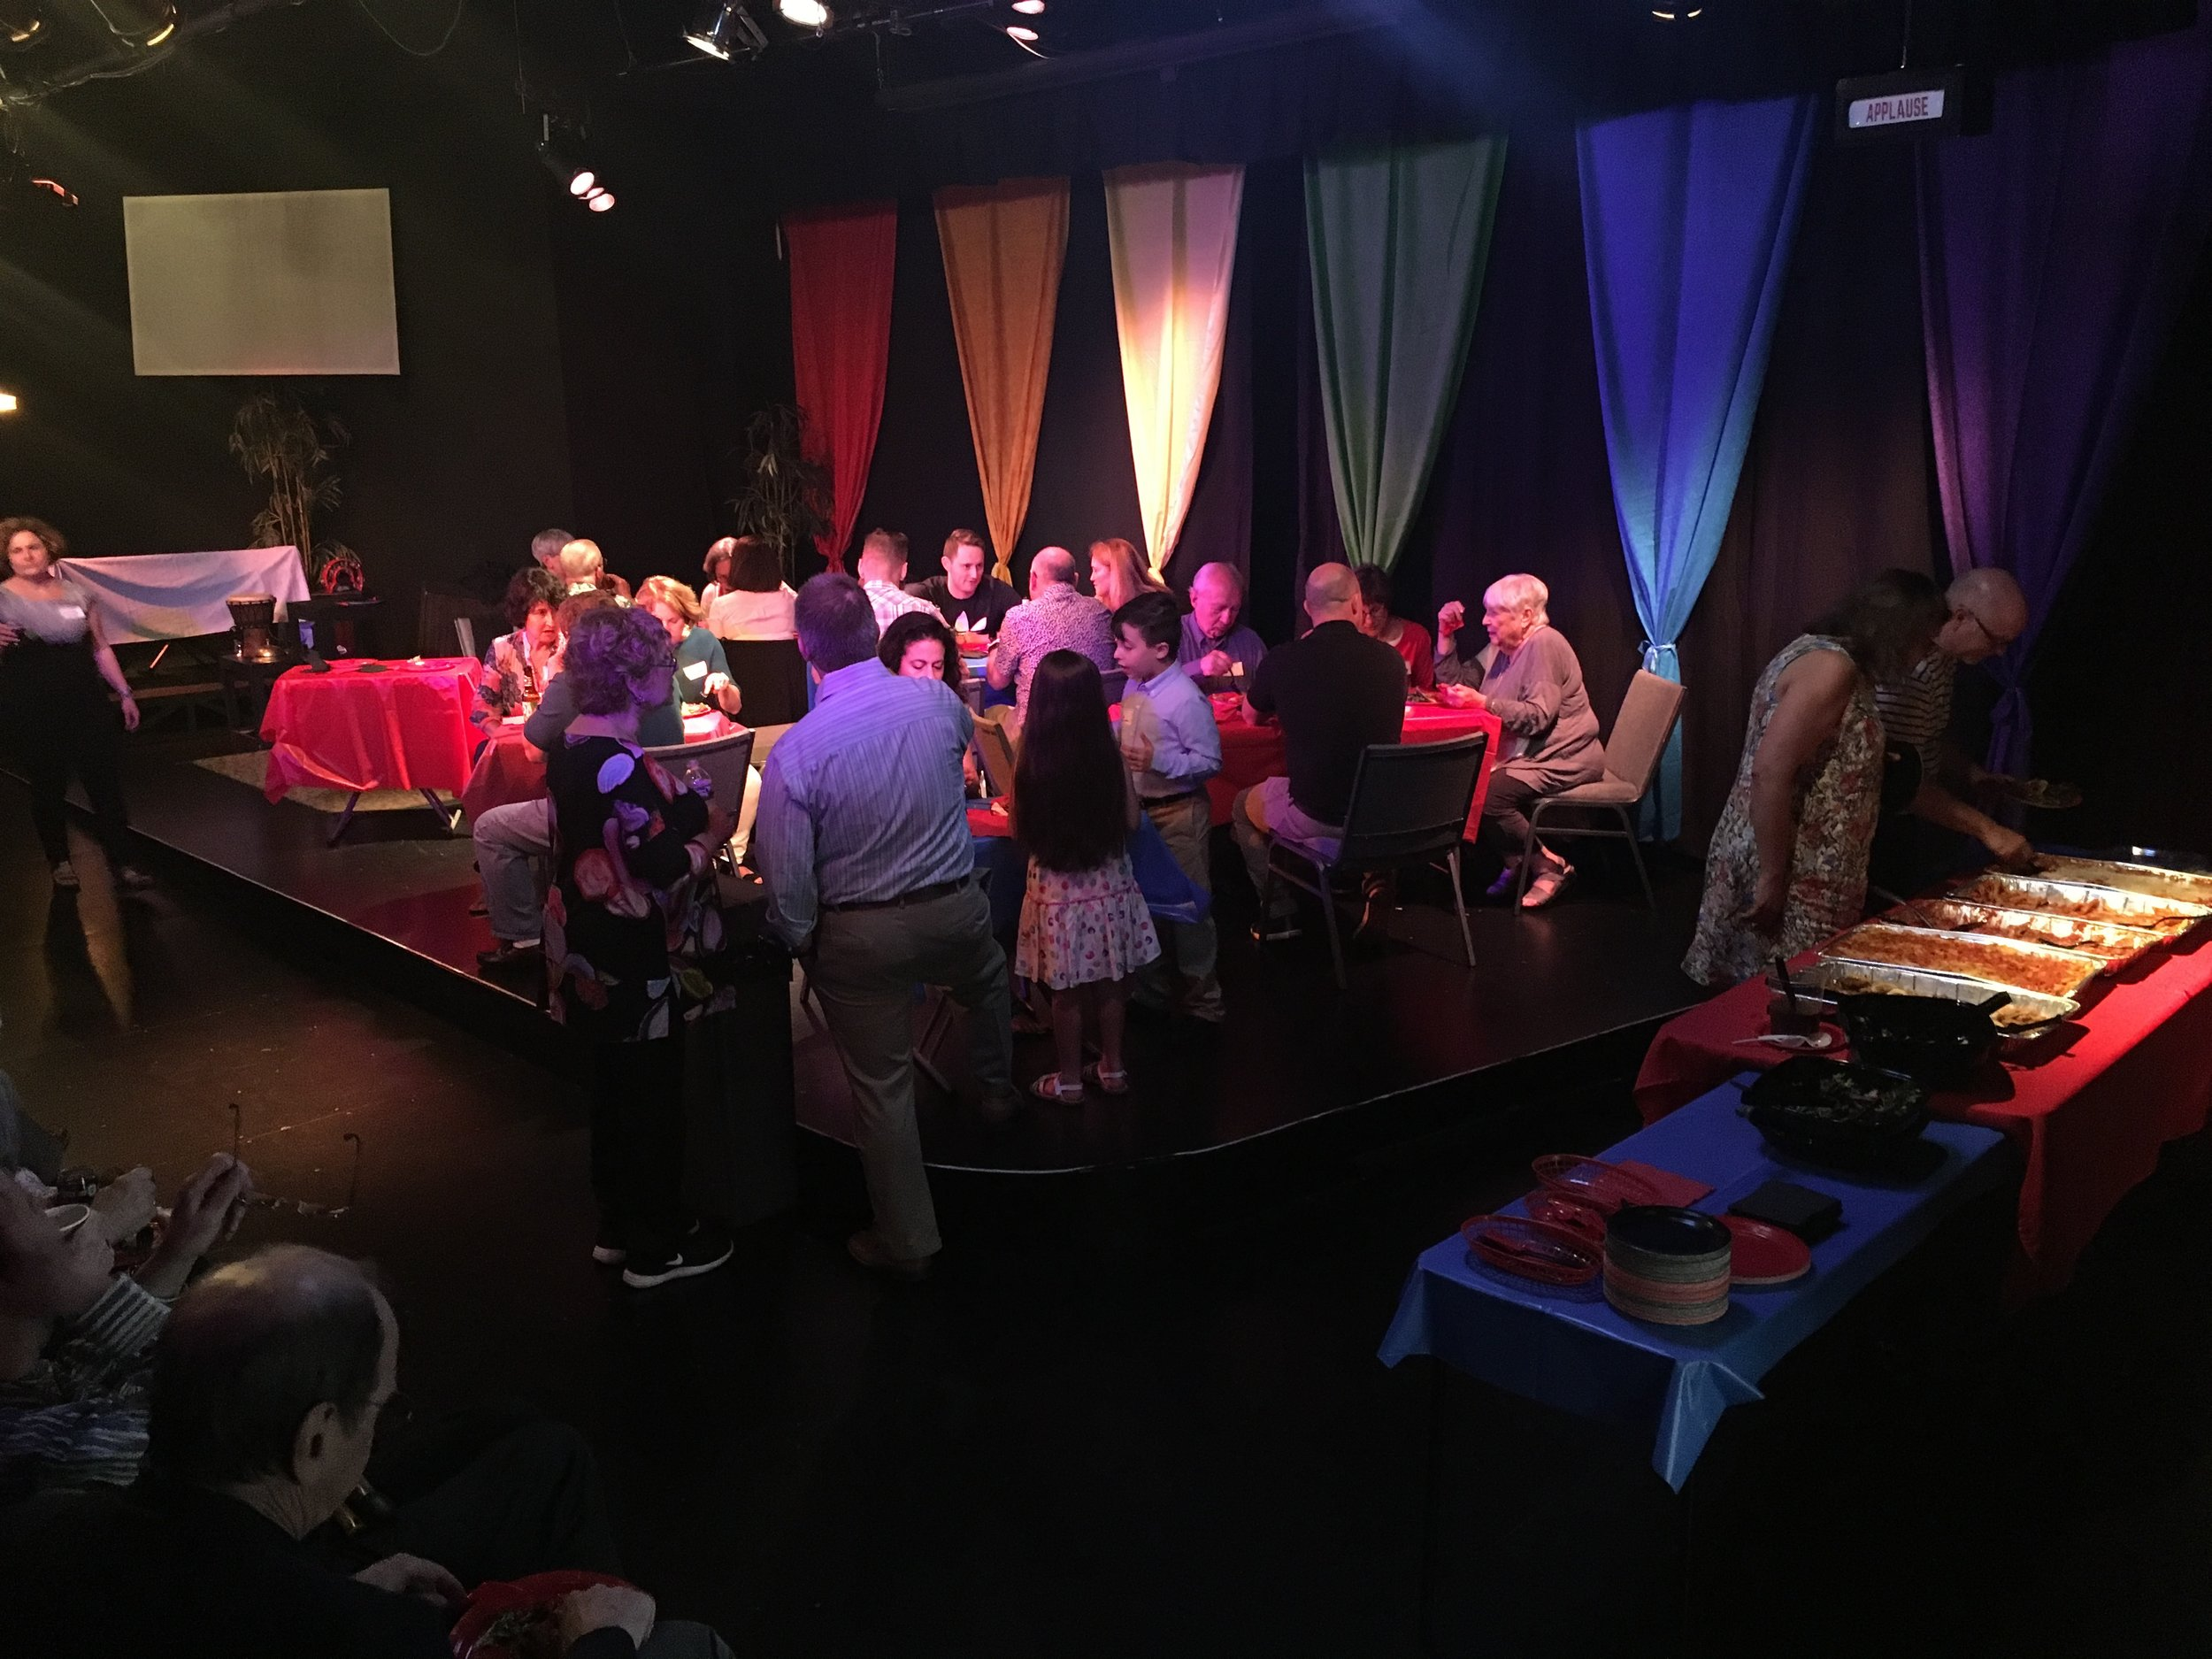 The Mopco is great for adult parties too!  - With or without a show, the Mopco might bethe perfect venue for your gathering!